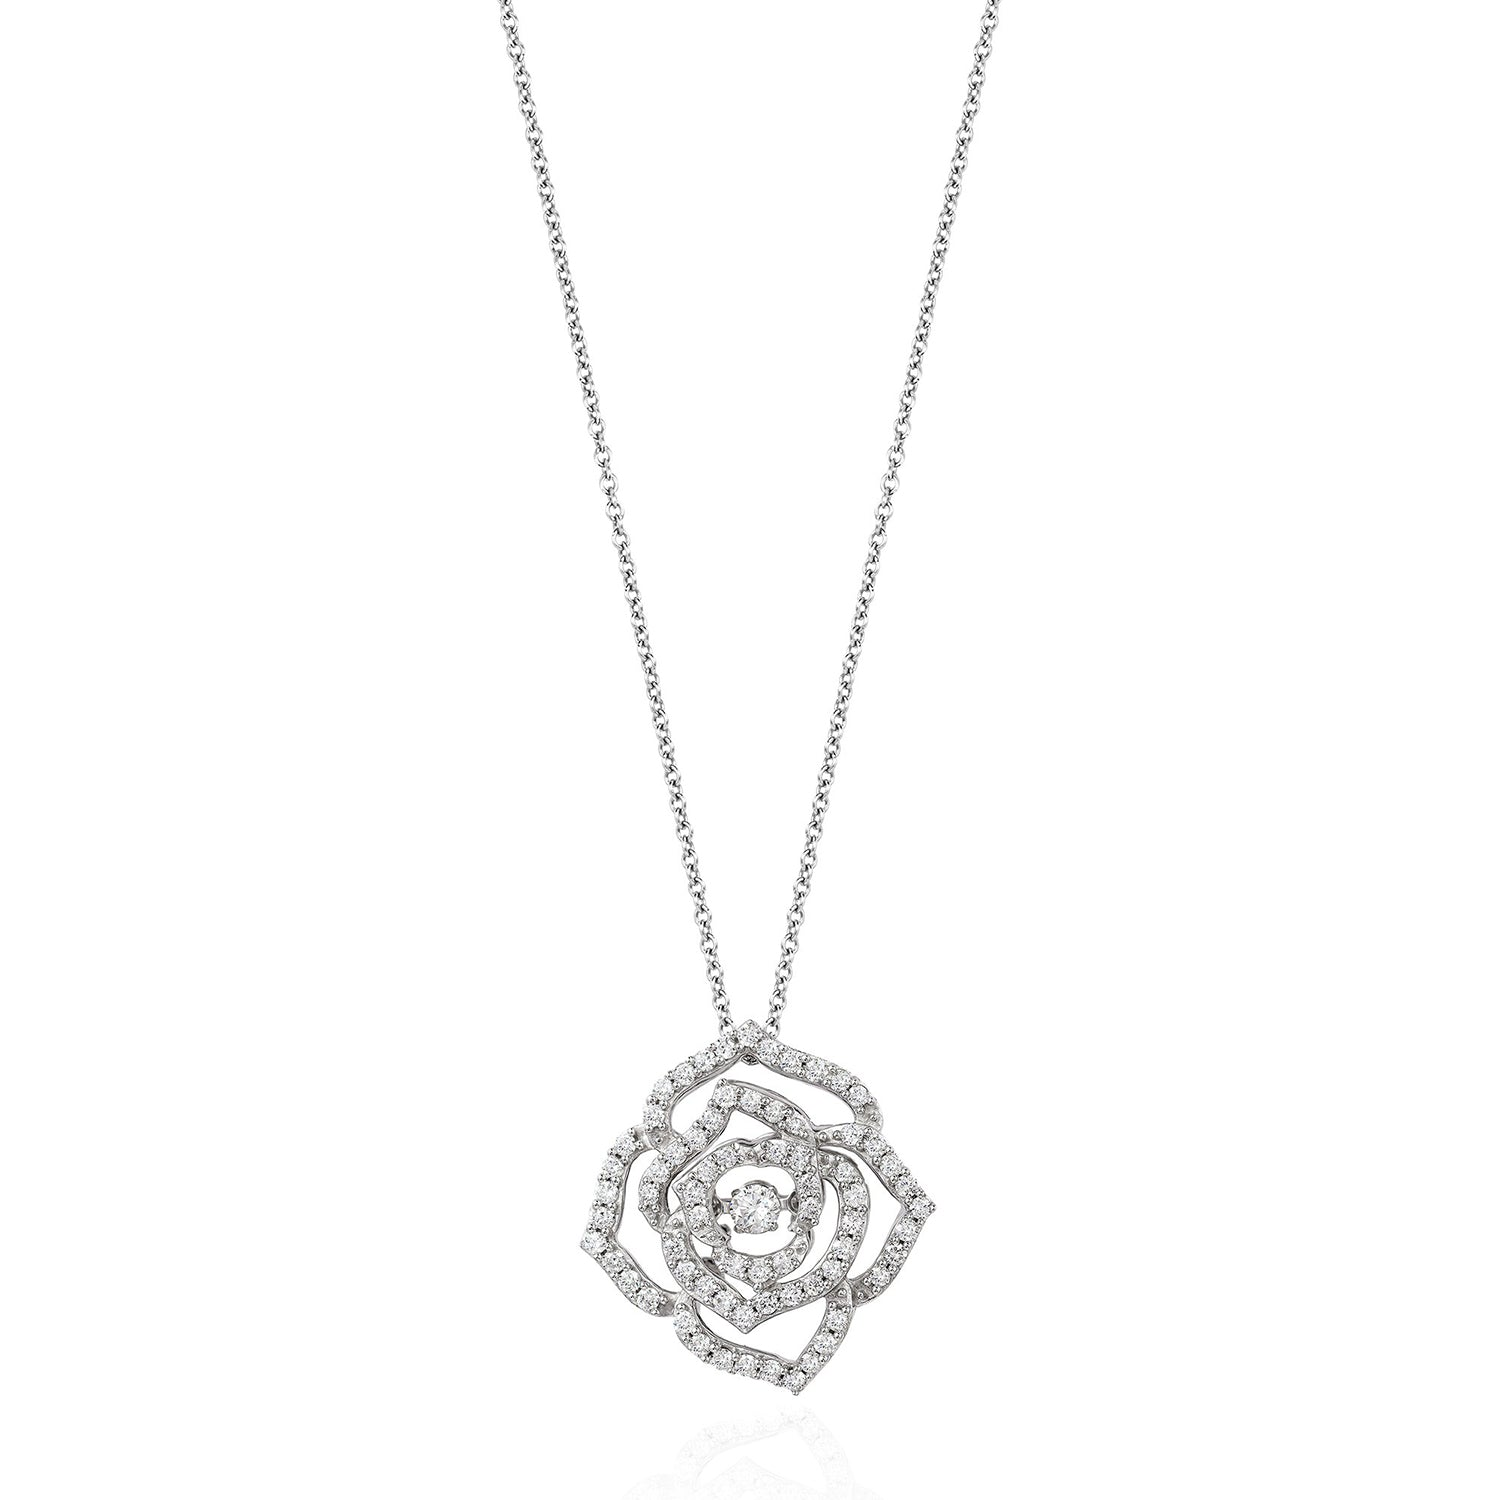 enchanted_disney-belle_rose_necklace-14k_white_gold_1